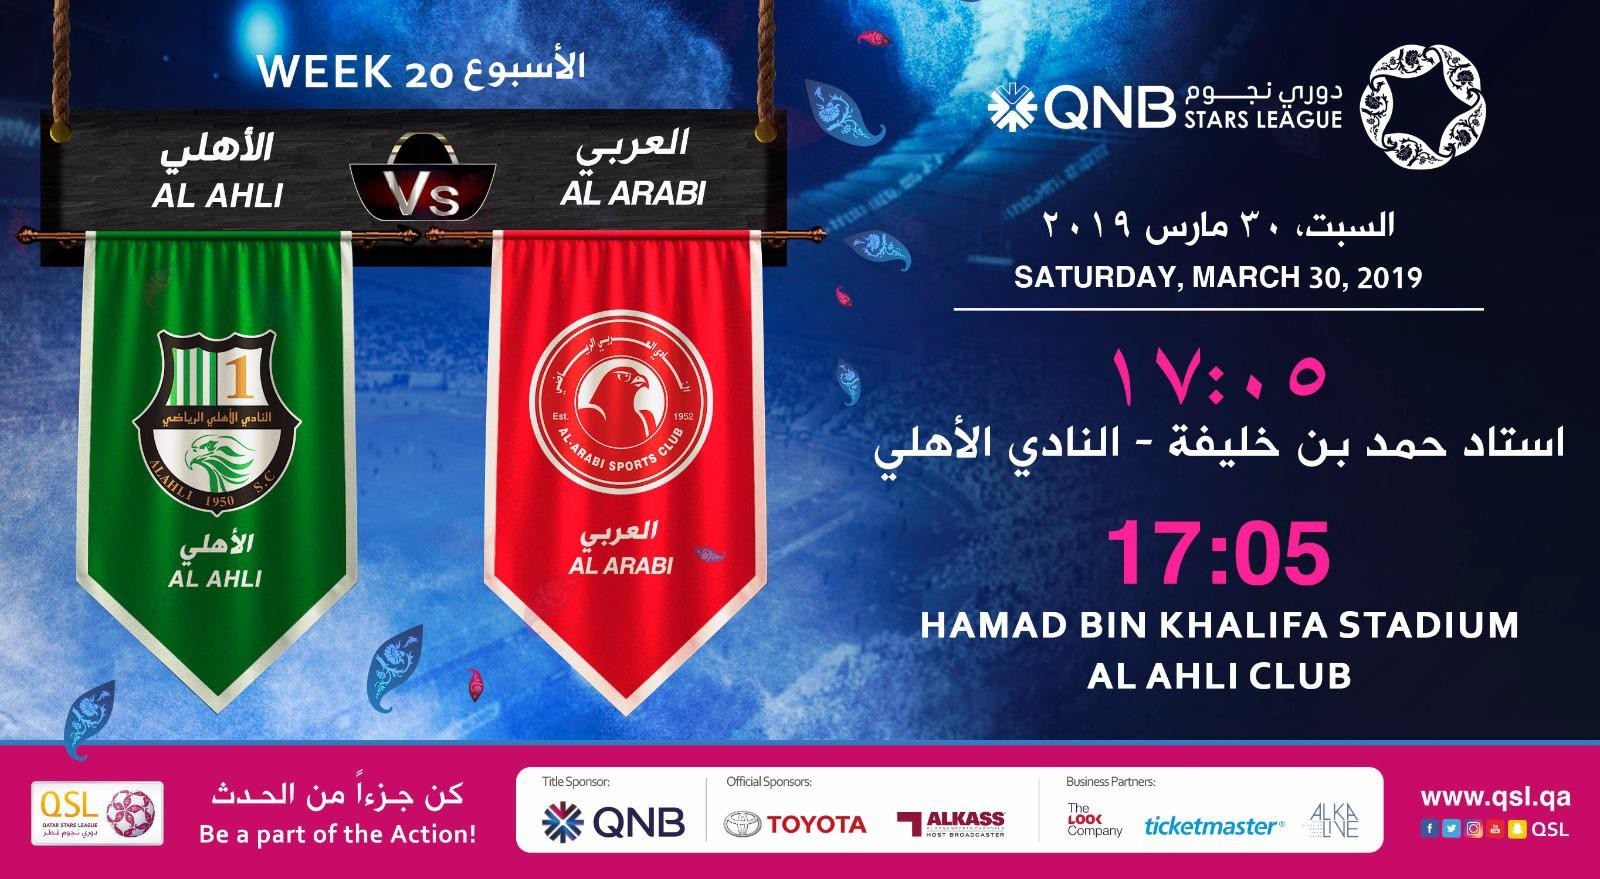 QNB Stars League Week 20 — Al Ahli vs Al Arabi